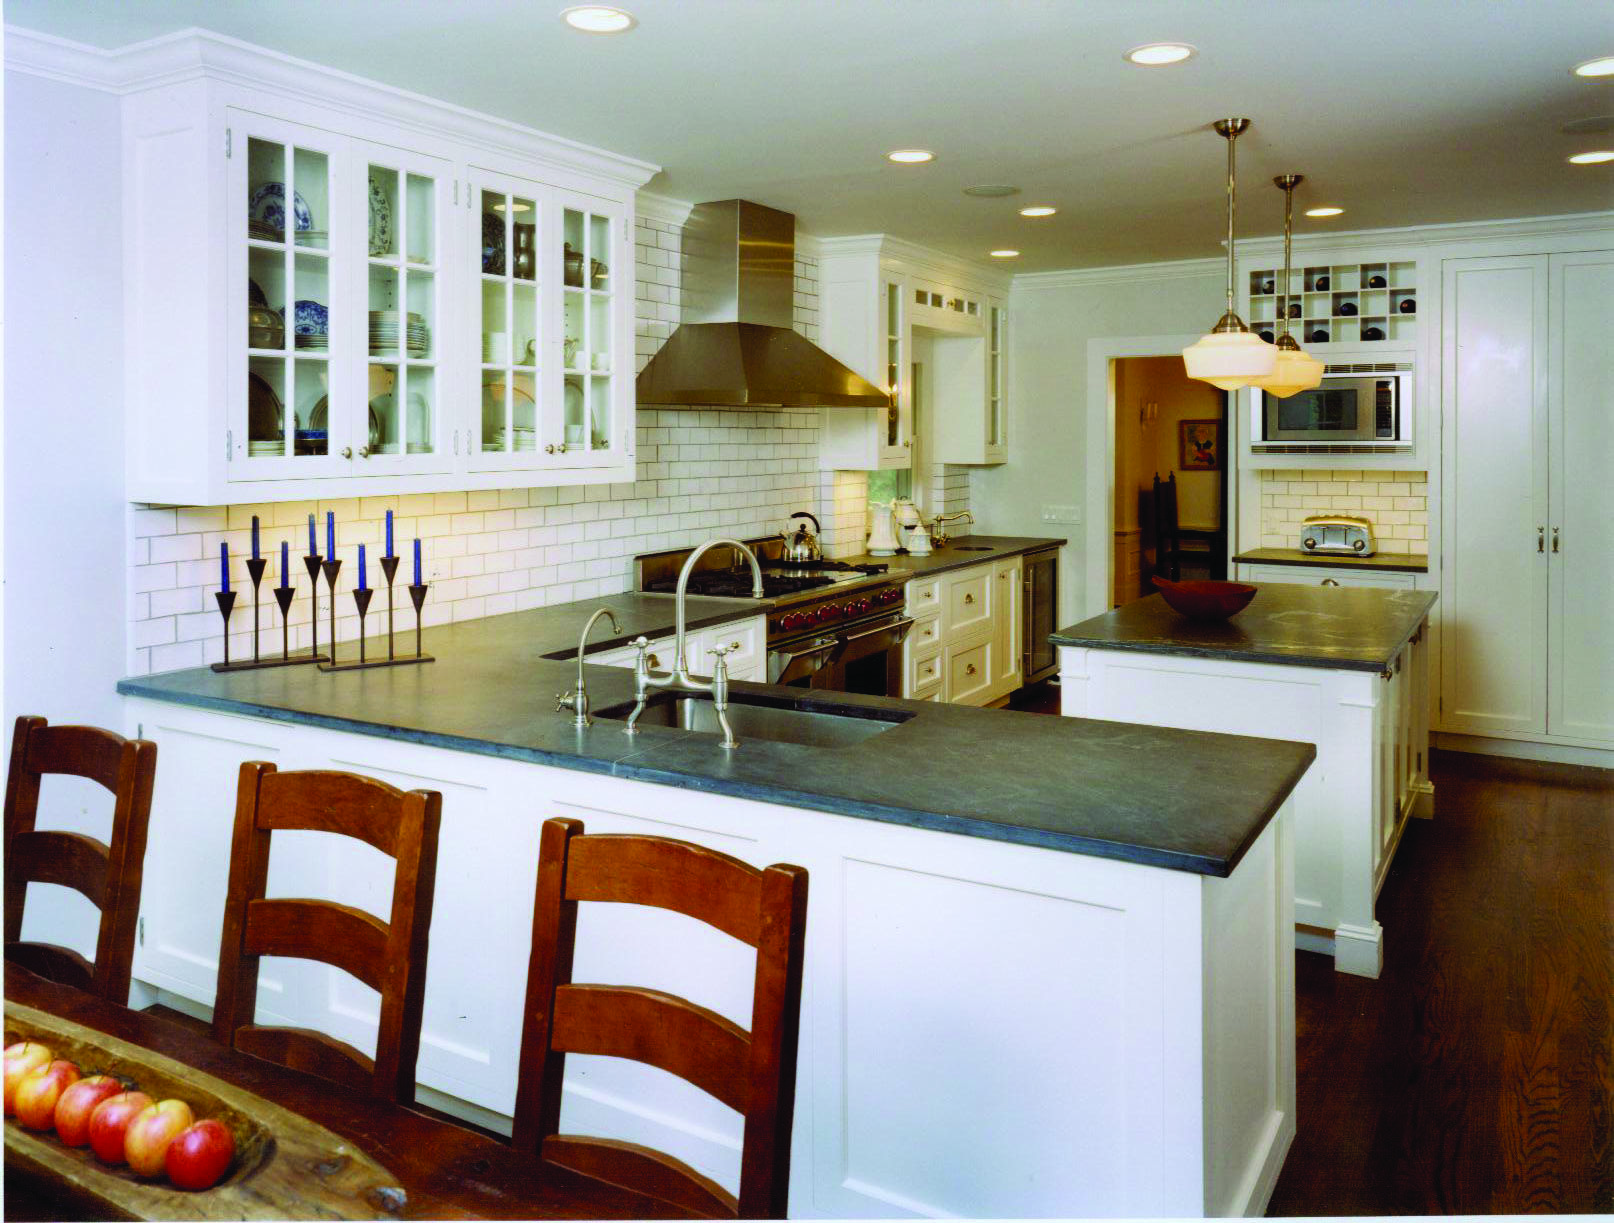 Peninsula with no counter overhang, | Kitchen ideas | Pinterest